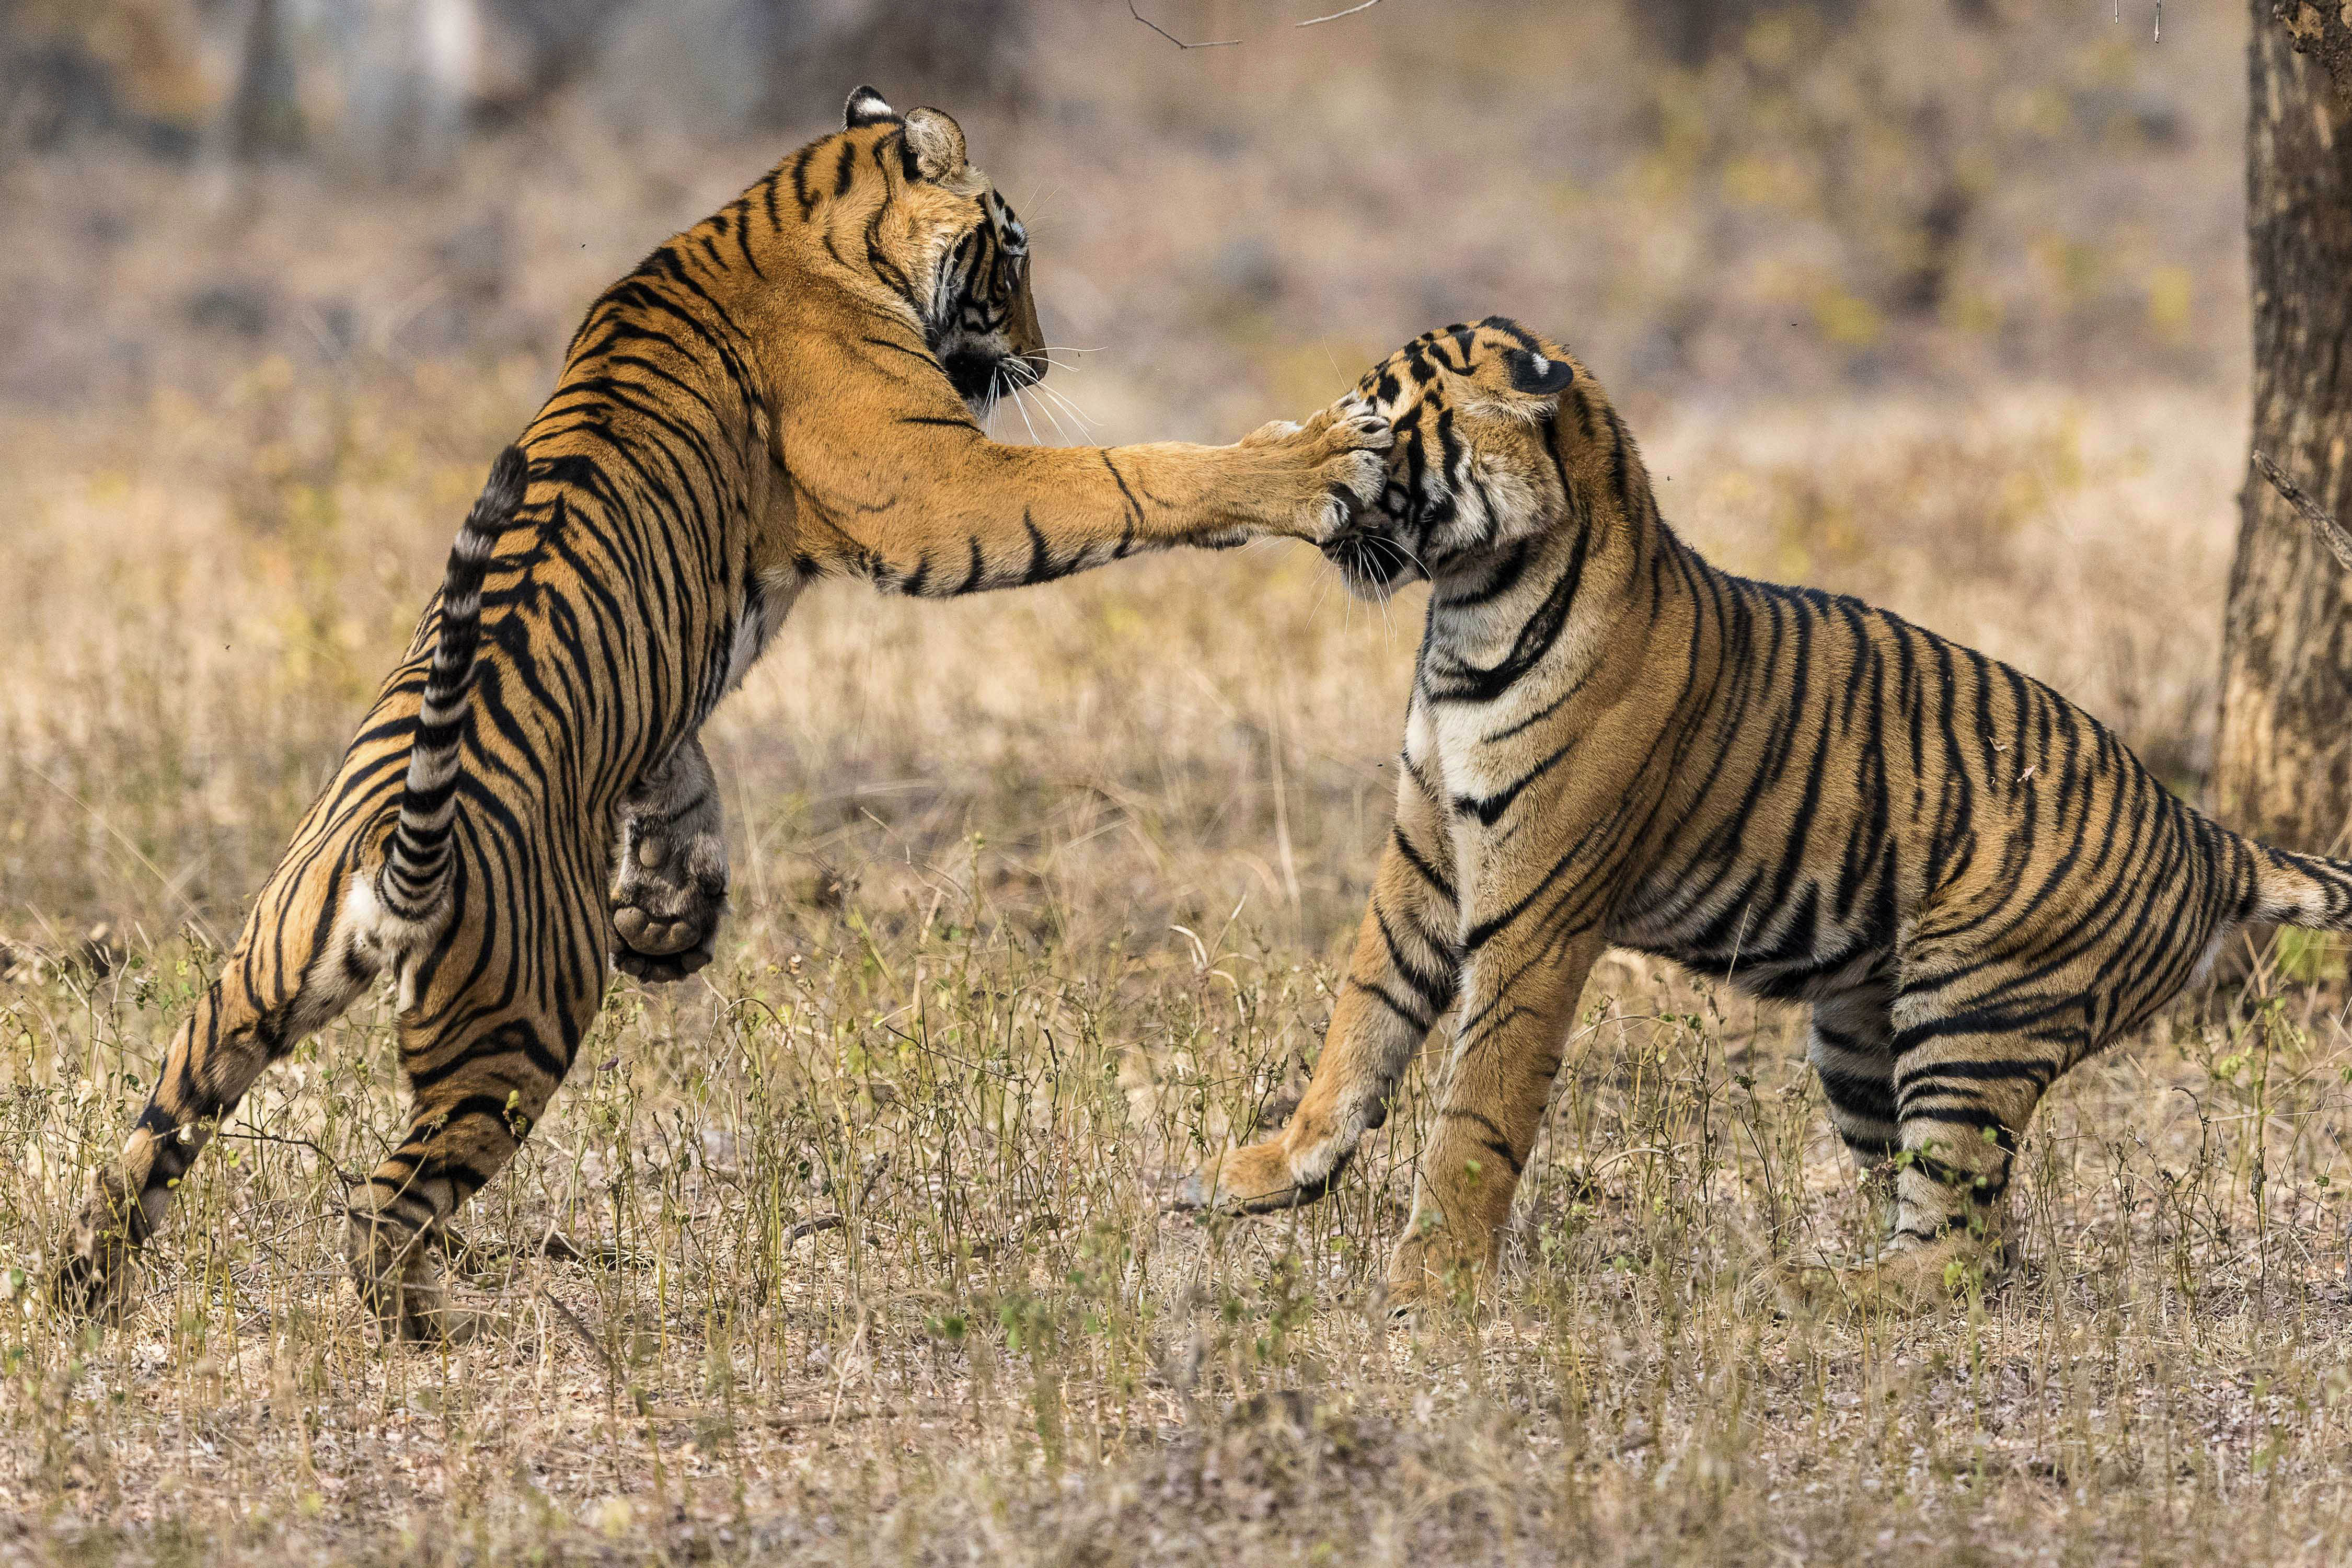 thrill of the fight – tigers in vicious brawl - caters news agency